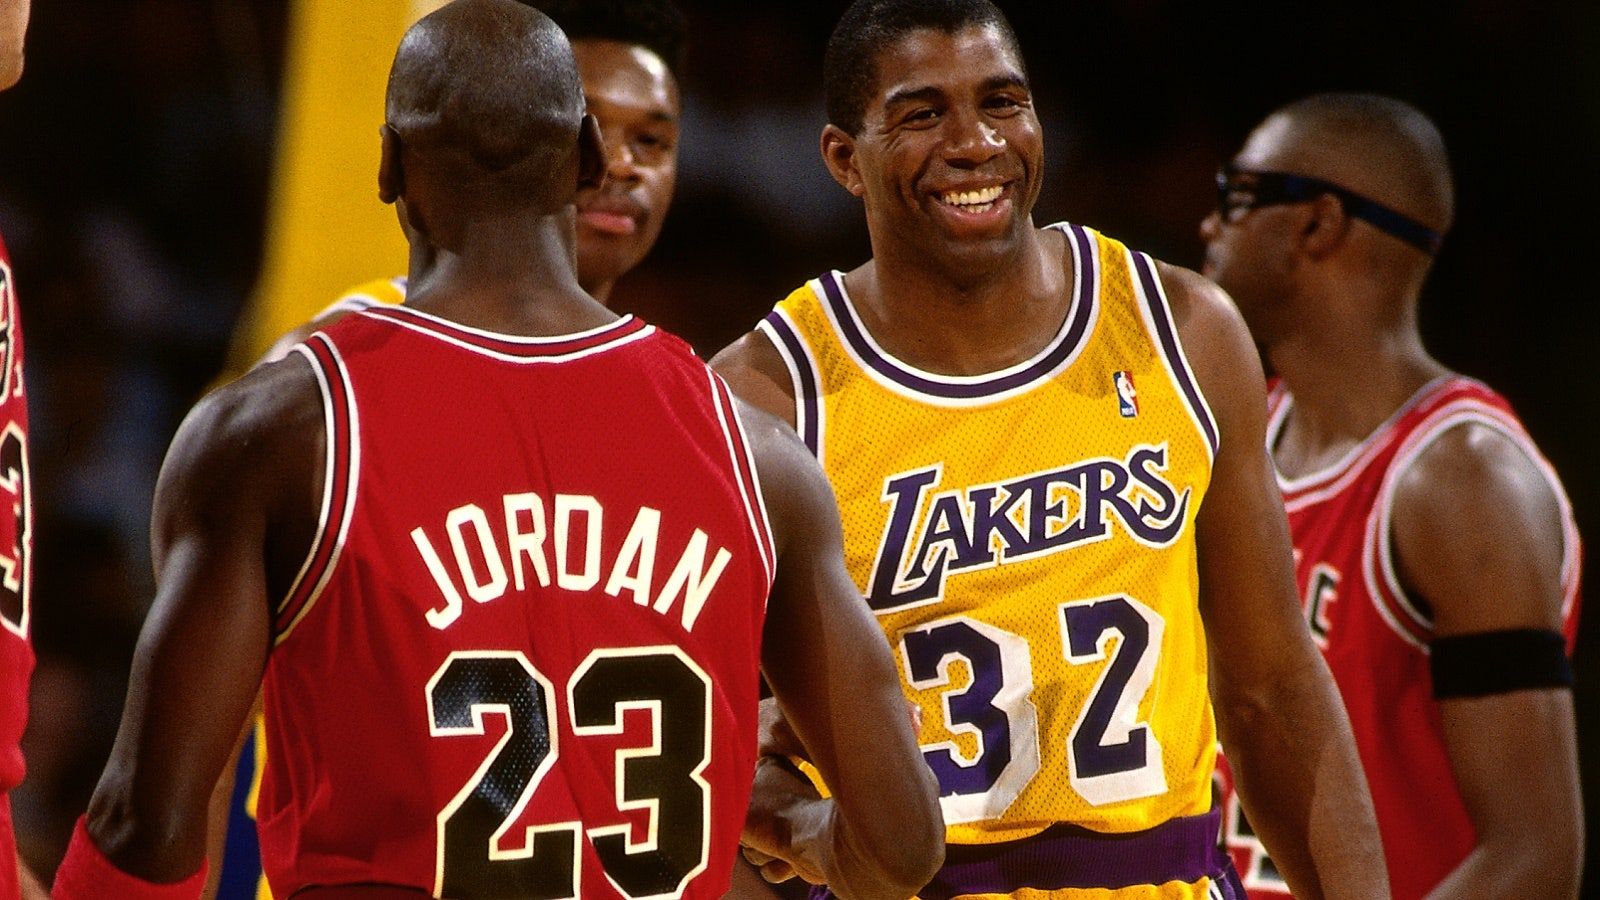 new styles c5a18 7e8f7 Every NBA team's best jersey ever, ranked from 30 to 1 | FOX ...